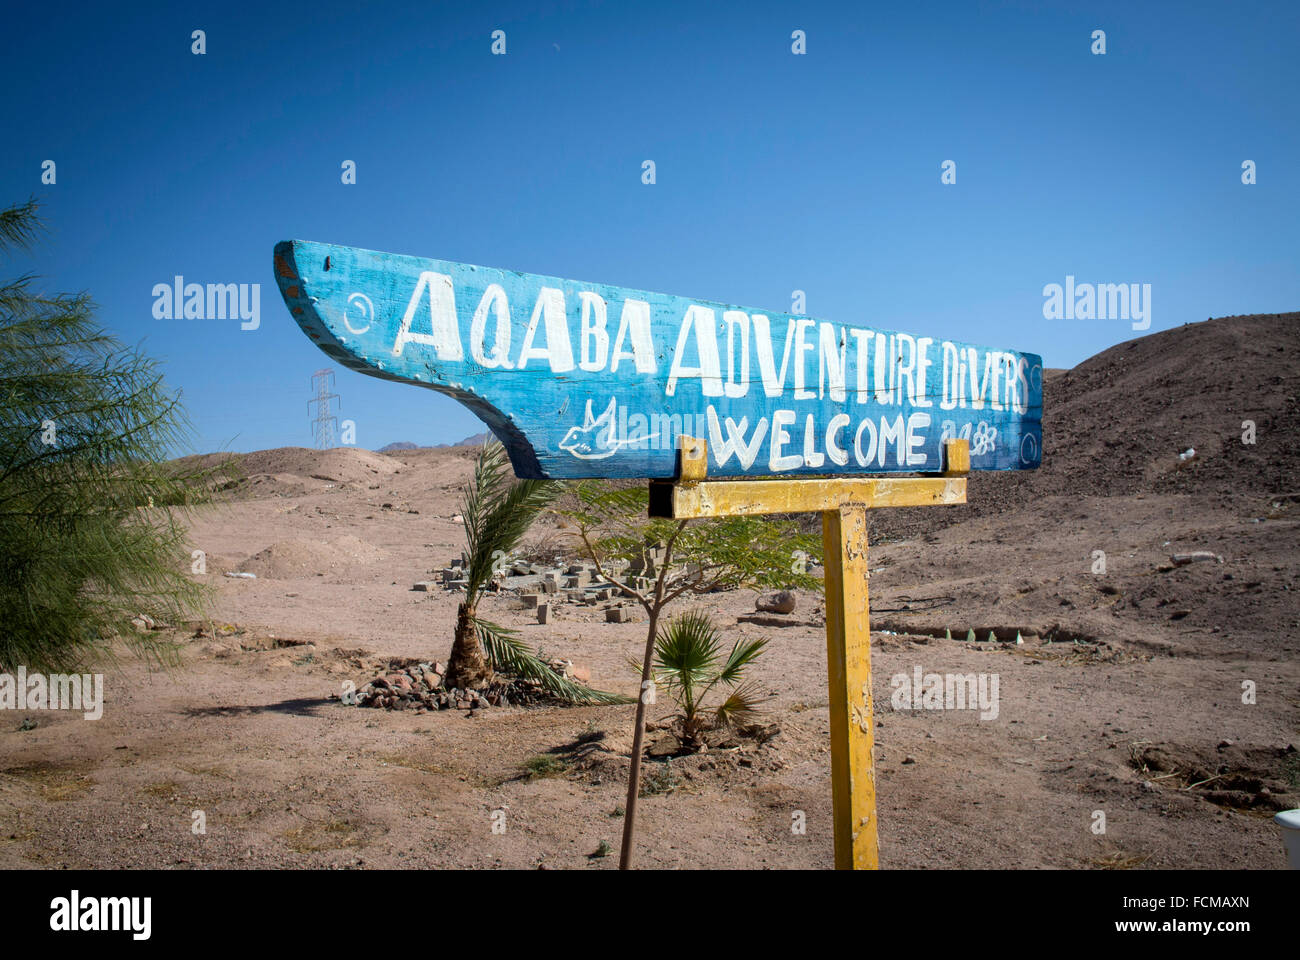 Signs to Diving Centers at Aqaba, Jordan - Stock Image